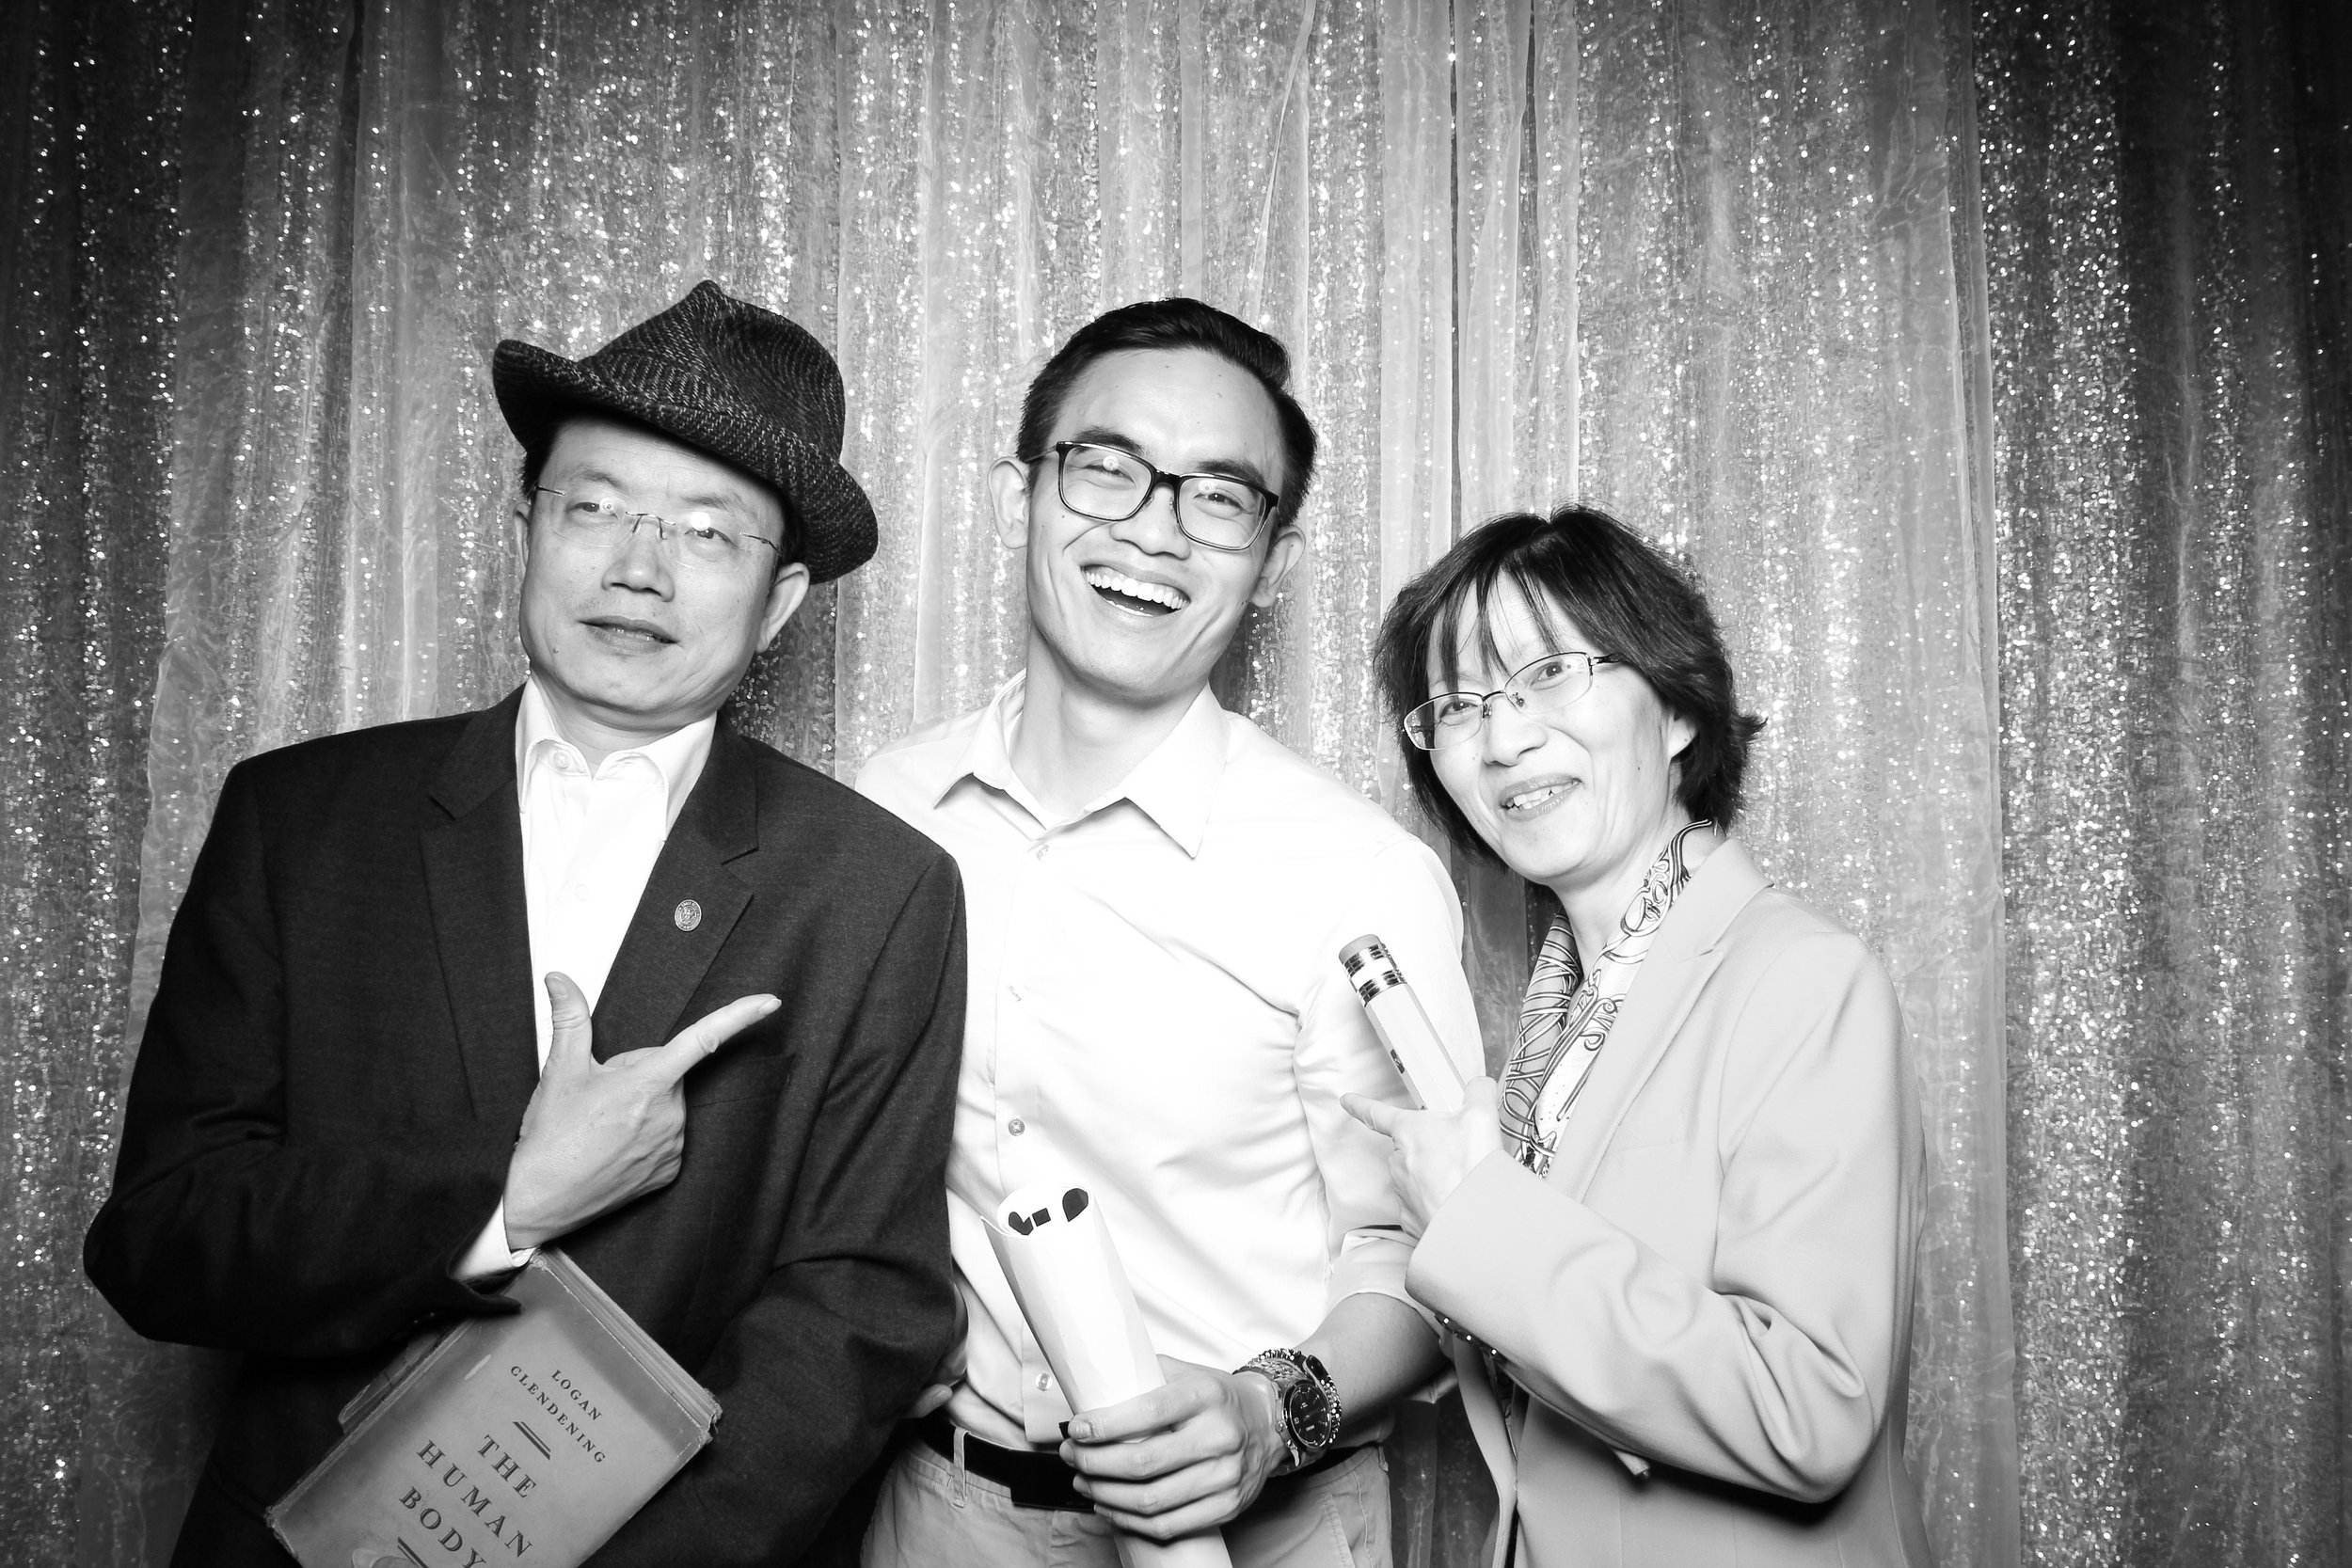 Chicago_Vintage_Wedding_Photobooth_Hyde_Park_06.jpg